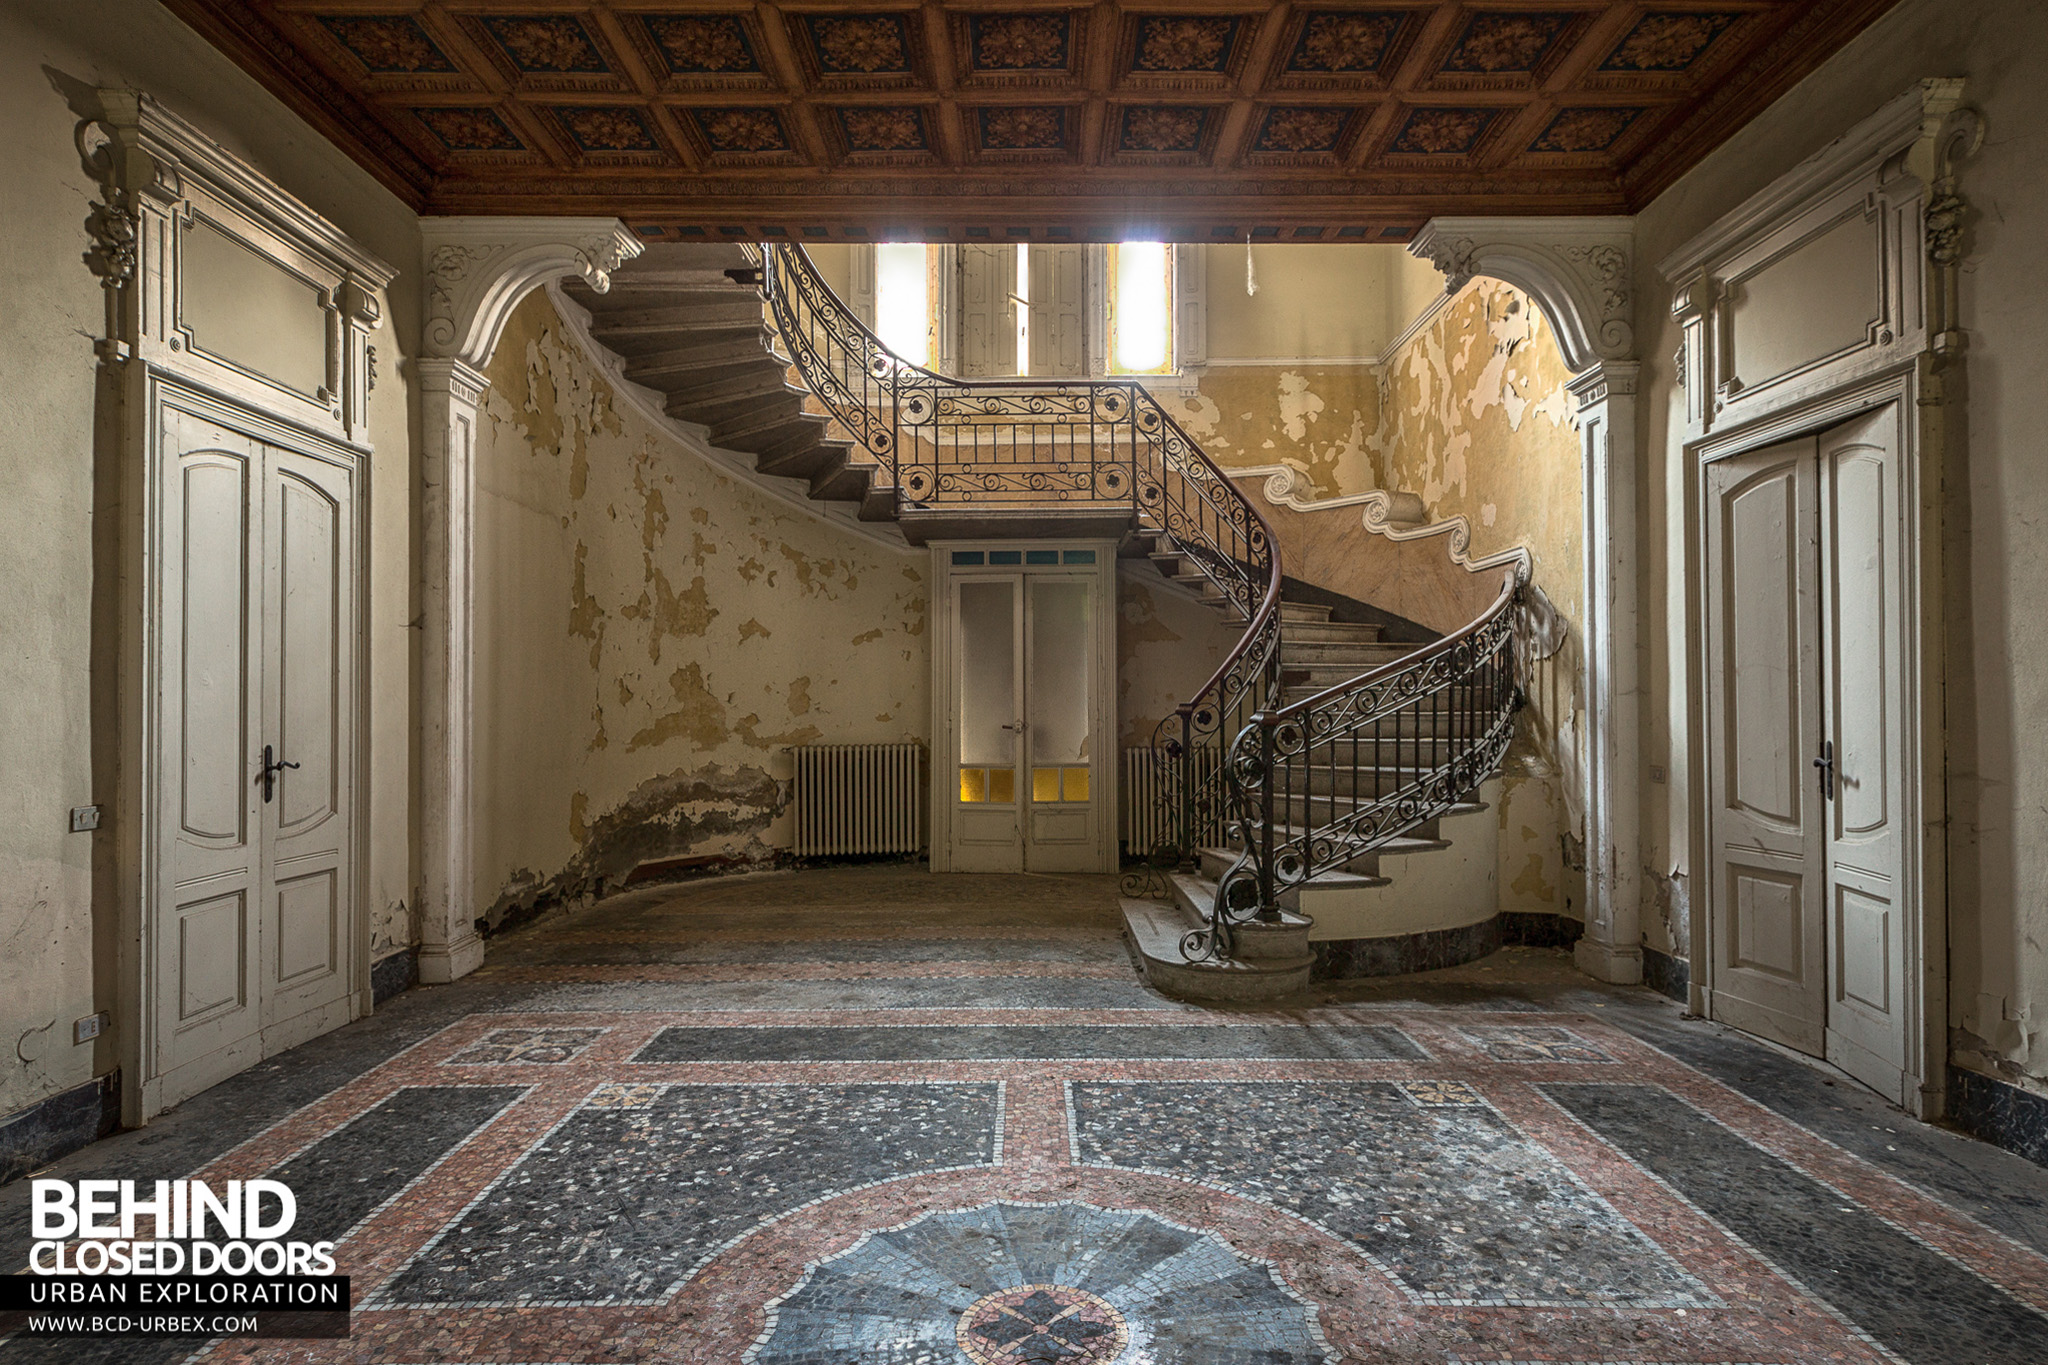 Foyer Hallway Urban Dictionary : Villa margherita abandoned house italy urbex behind